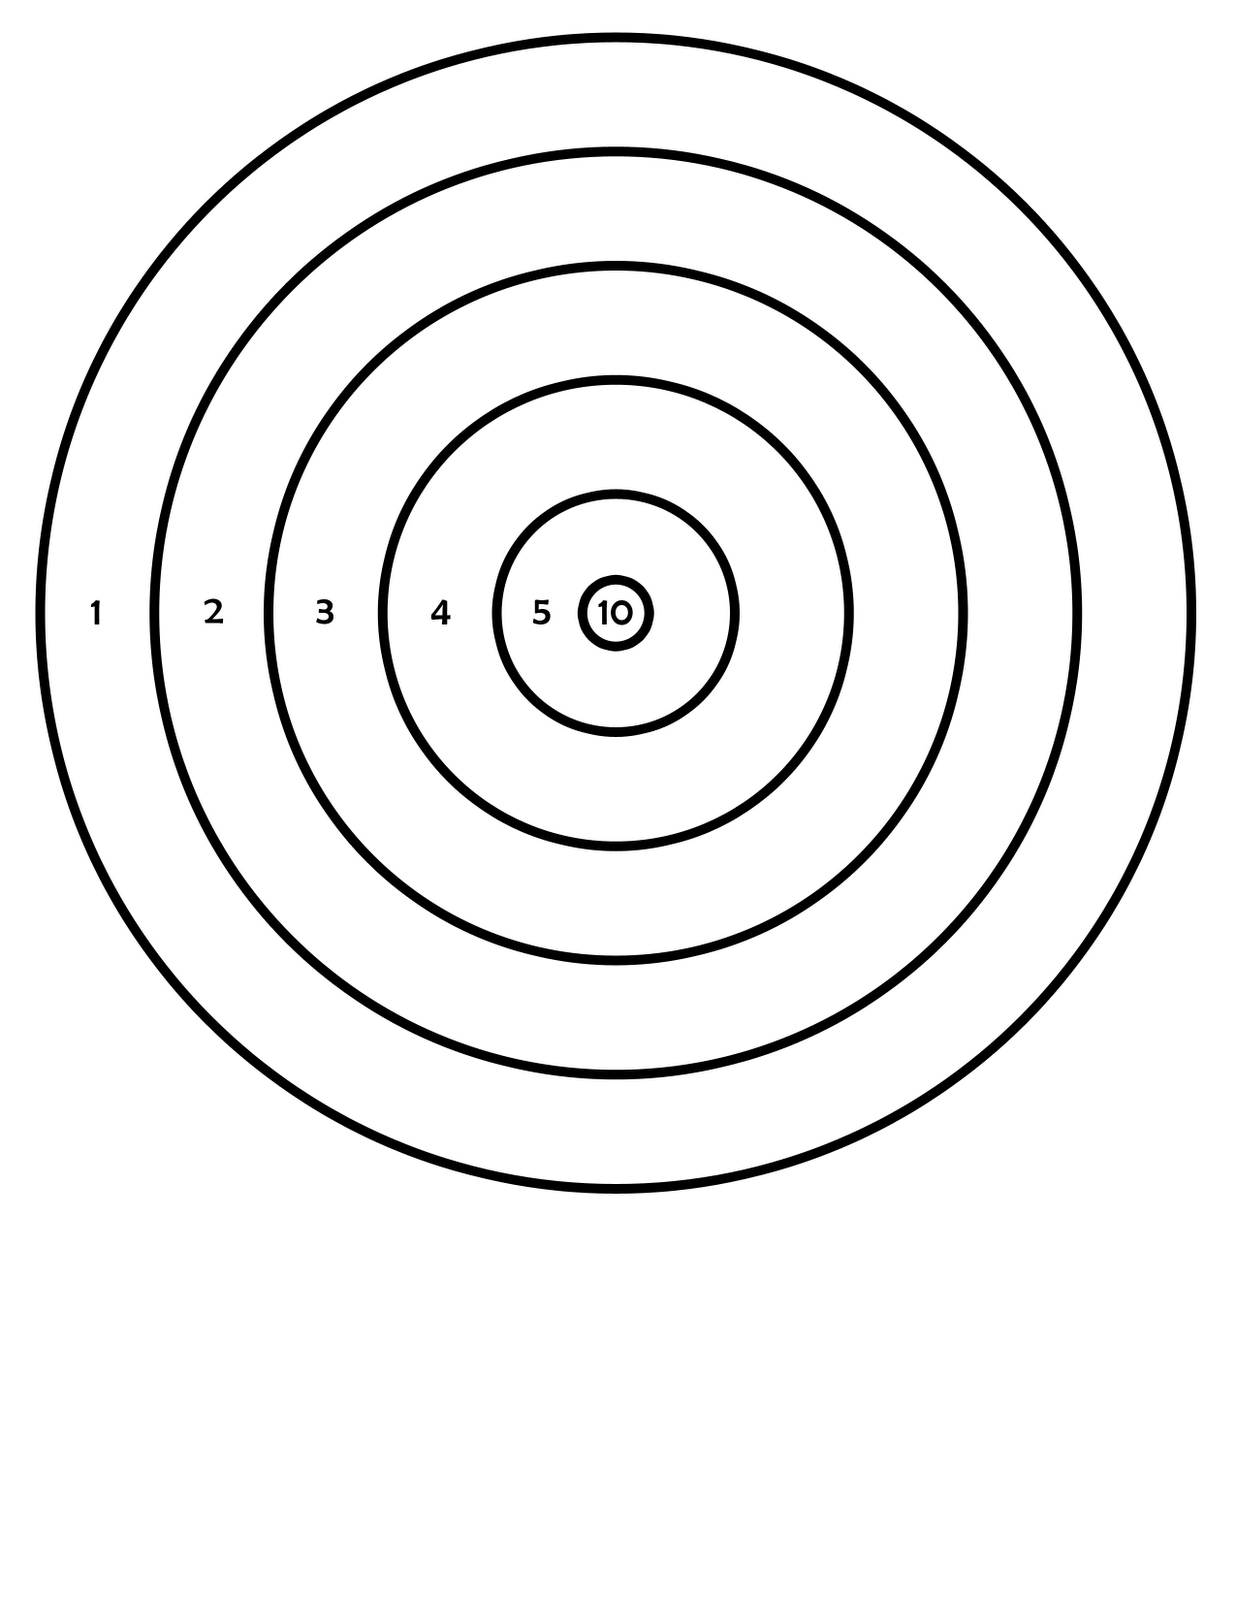 Printable Targets | 411Toys: Free Printable Airsoft Targets - Free Printable Pistol Targets